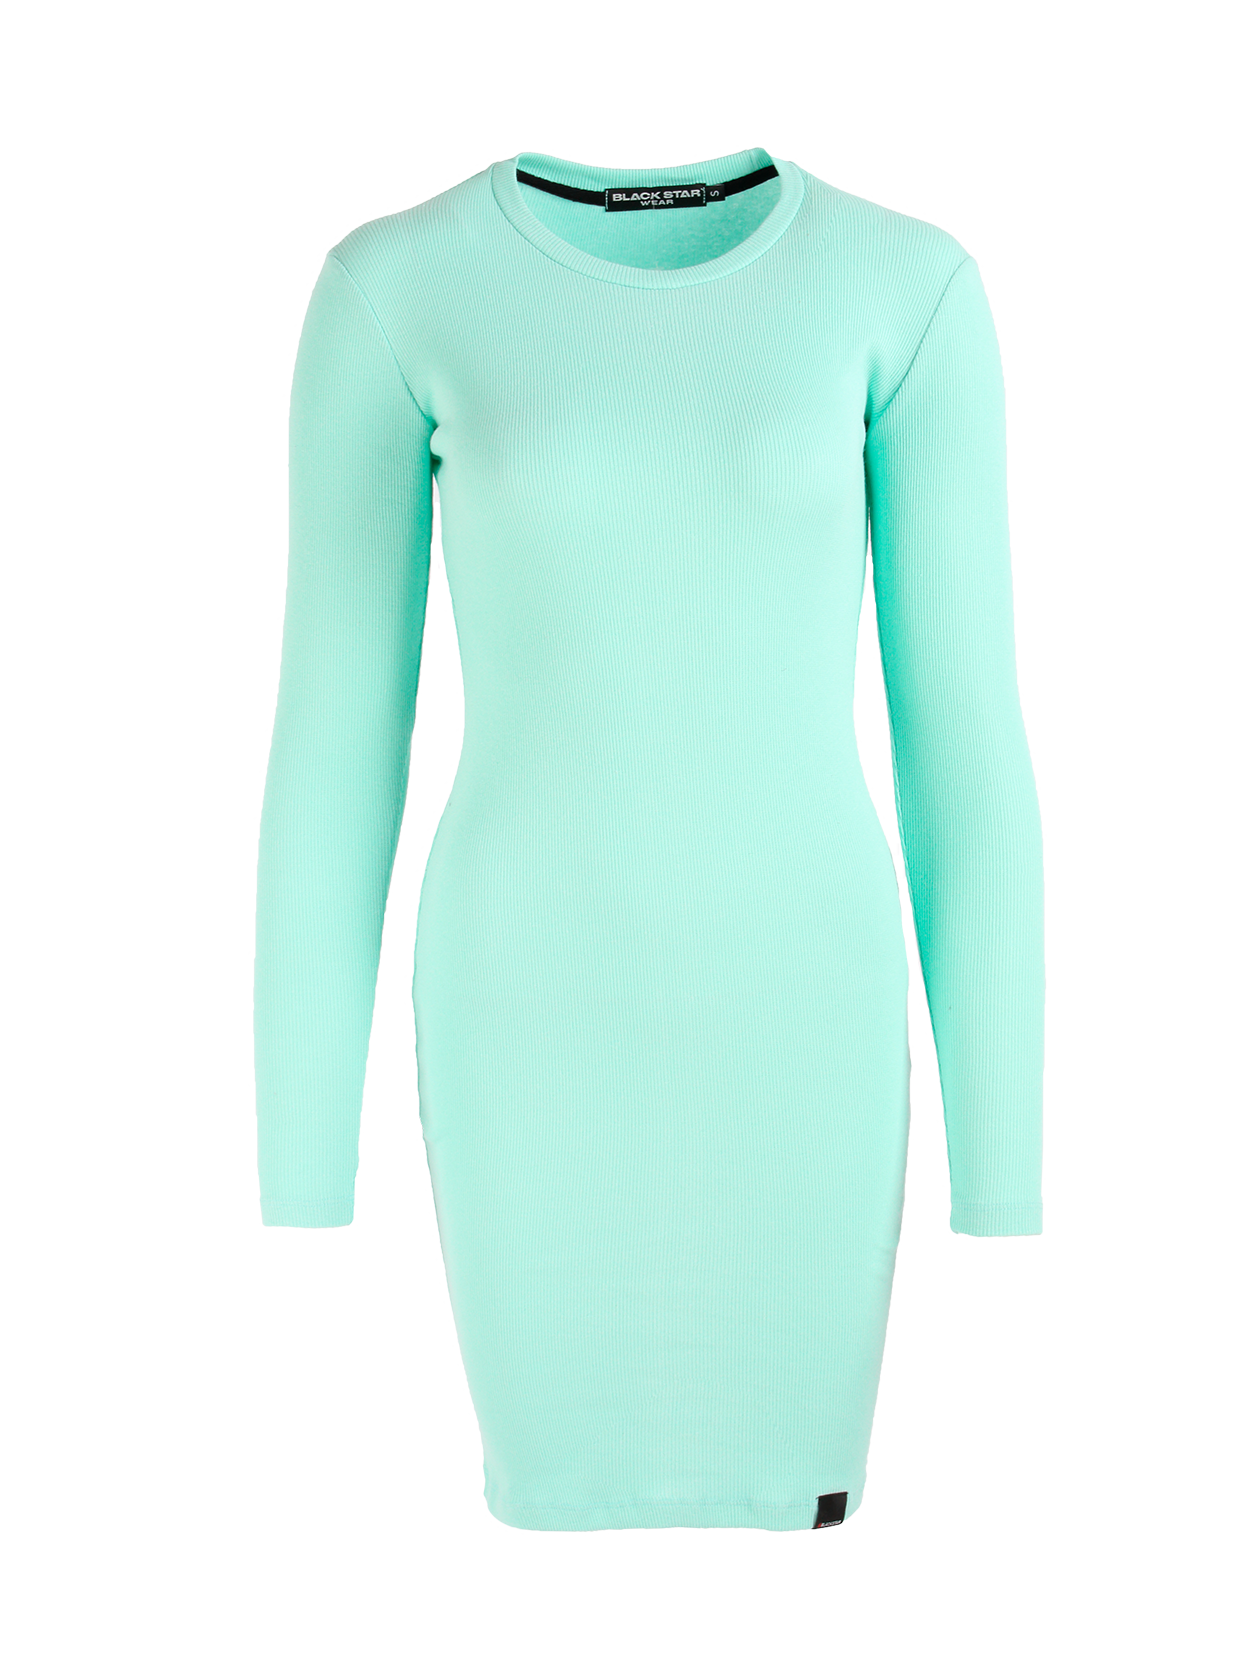 Womens dress MulticolourWomens dress by Black Star Wear. Slim fit, o-neck, lond sleeves. Small black label with #blackstar on the front. Natural cotton (90%) and lycra (10%) blend.<br><br>size: L<br>color: Mint<br>gender: female